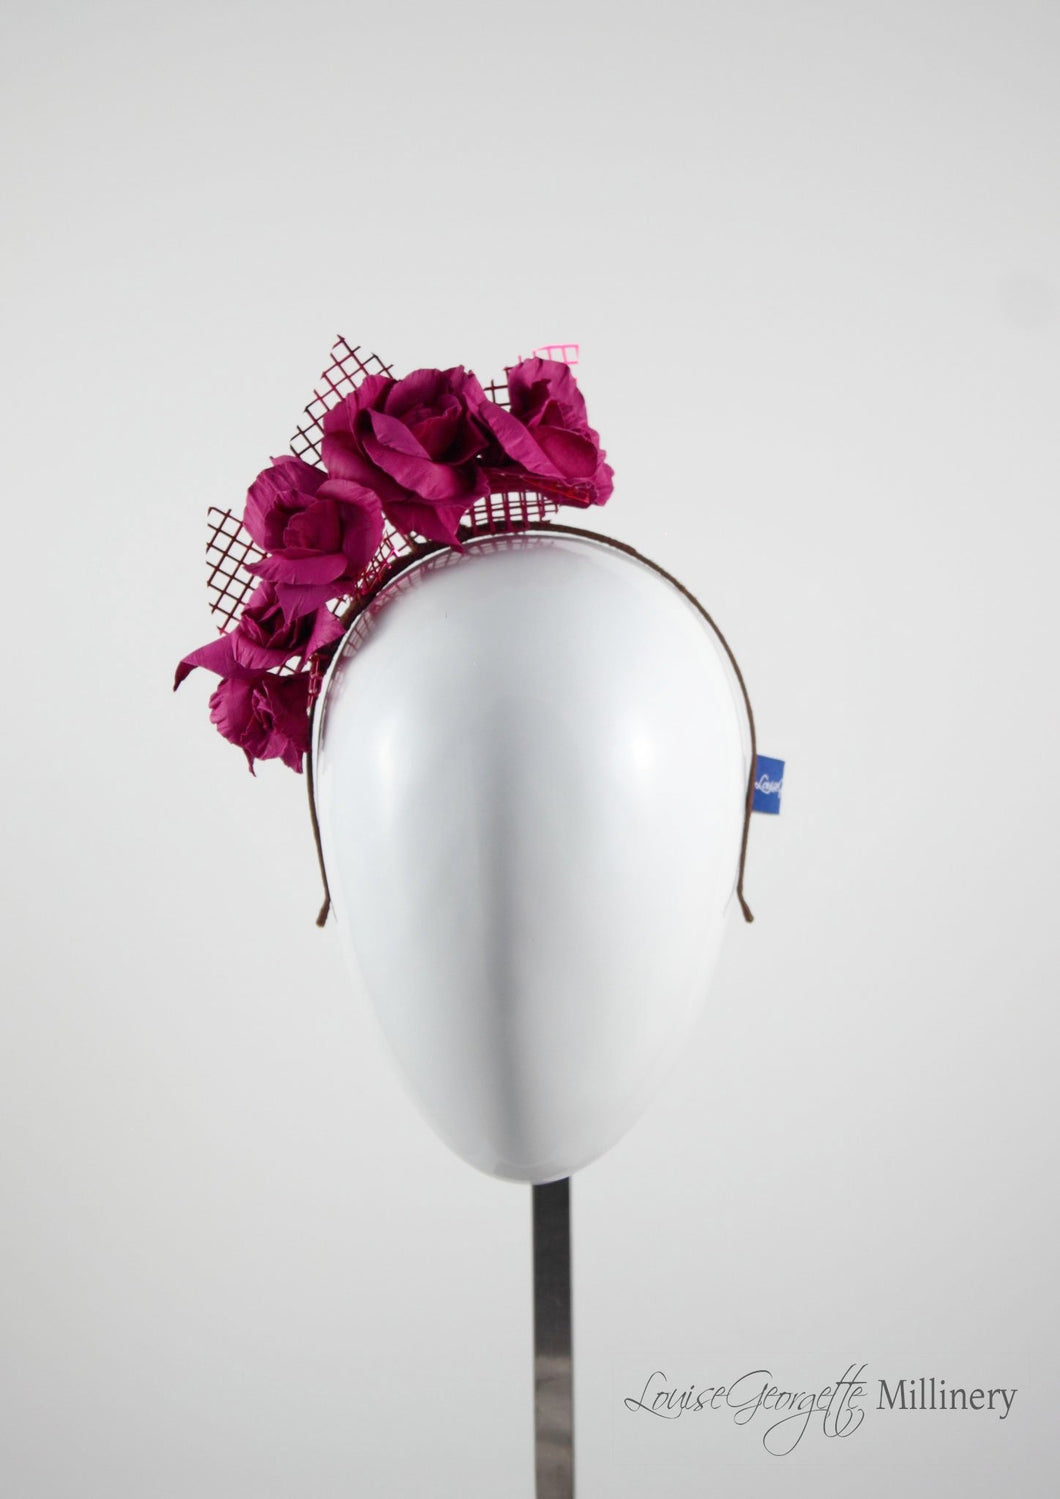 Leather roses on headband with reflective lattice detail. Millinery handmade in London. Front view. Pink